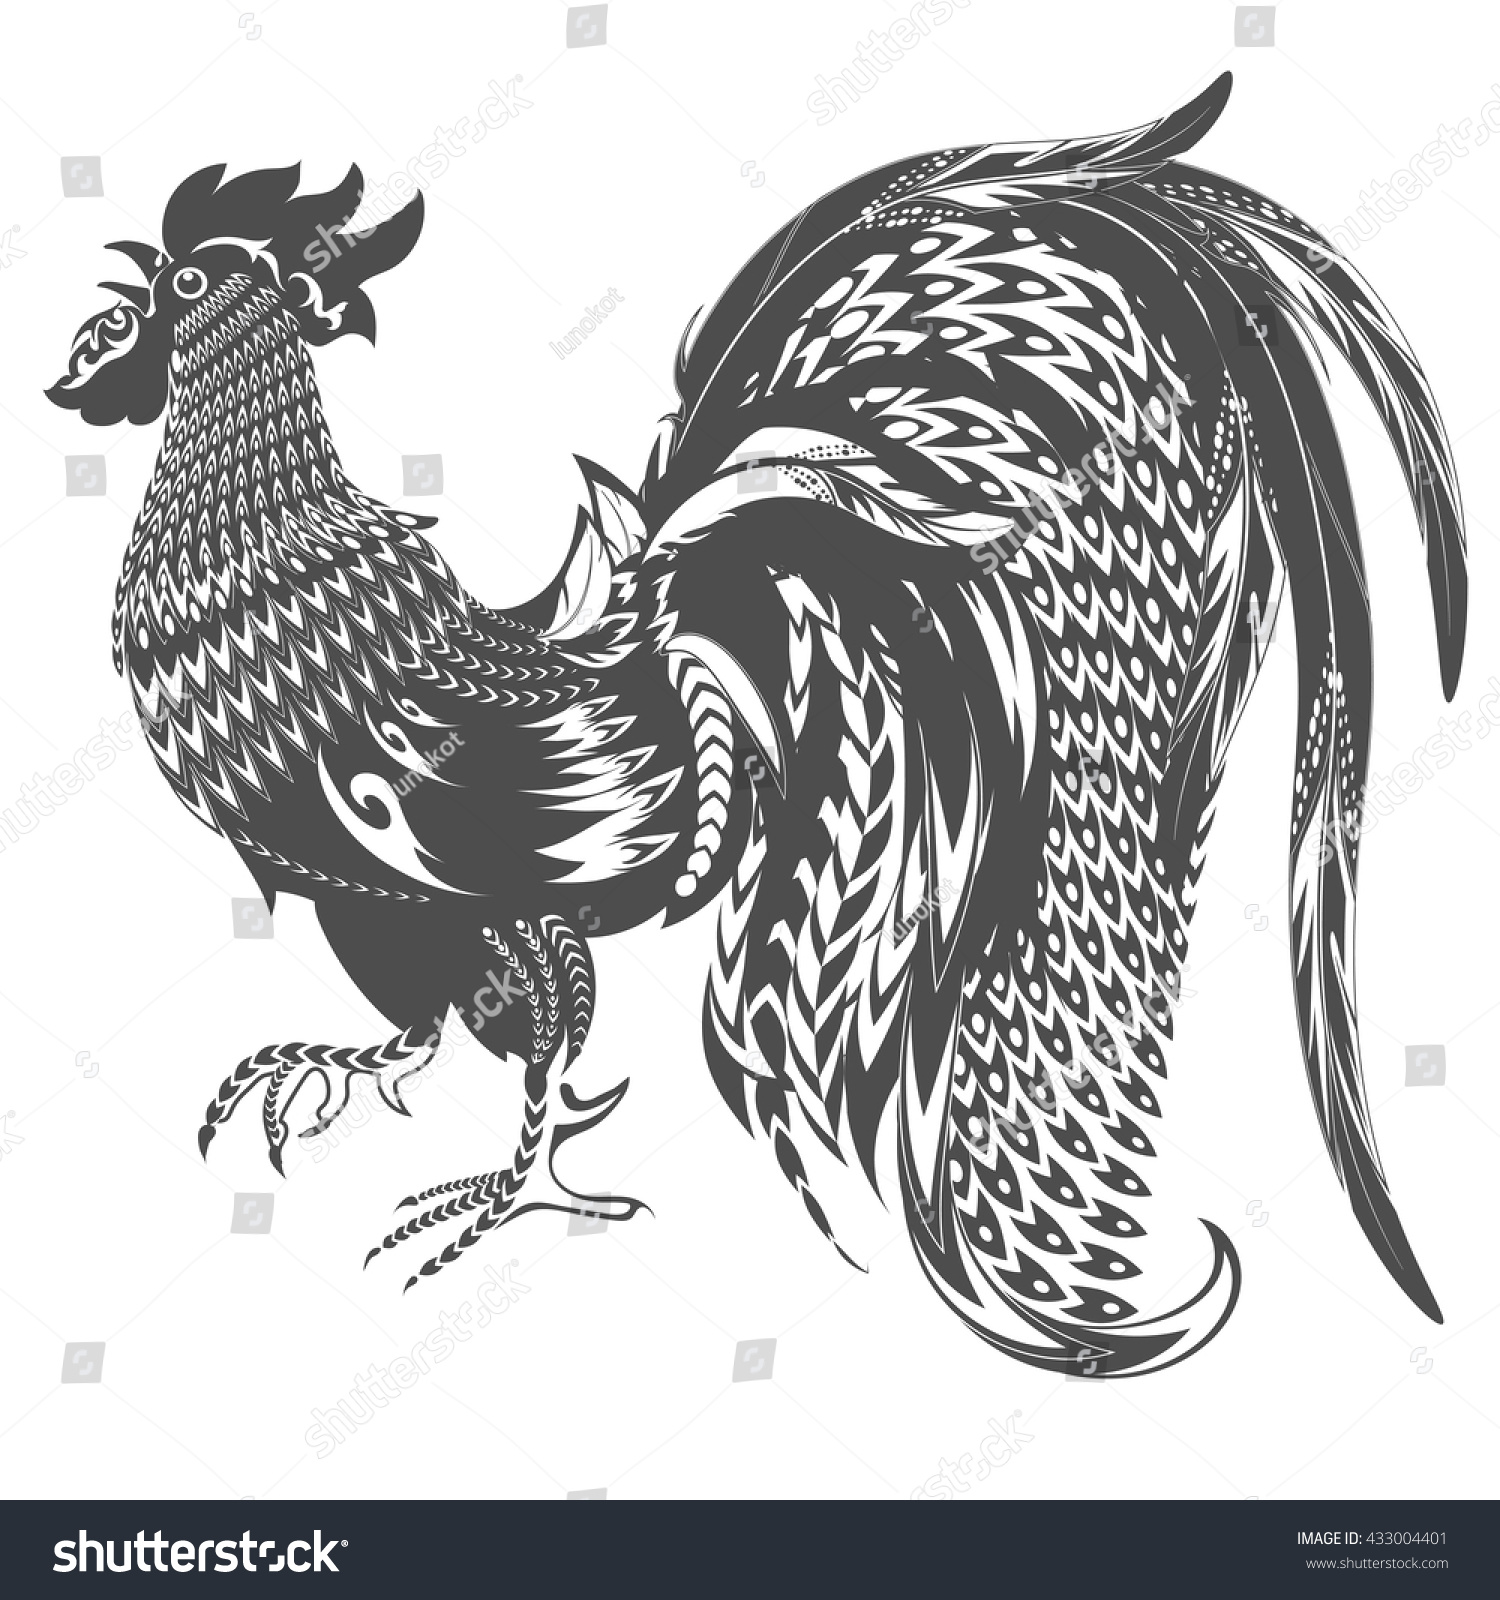 Rooster tattoo decorative bird doodling style stock vector 433004401 shutterstock - Cock designing ...